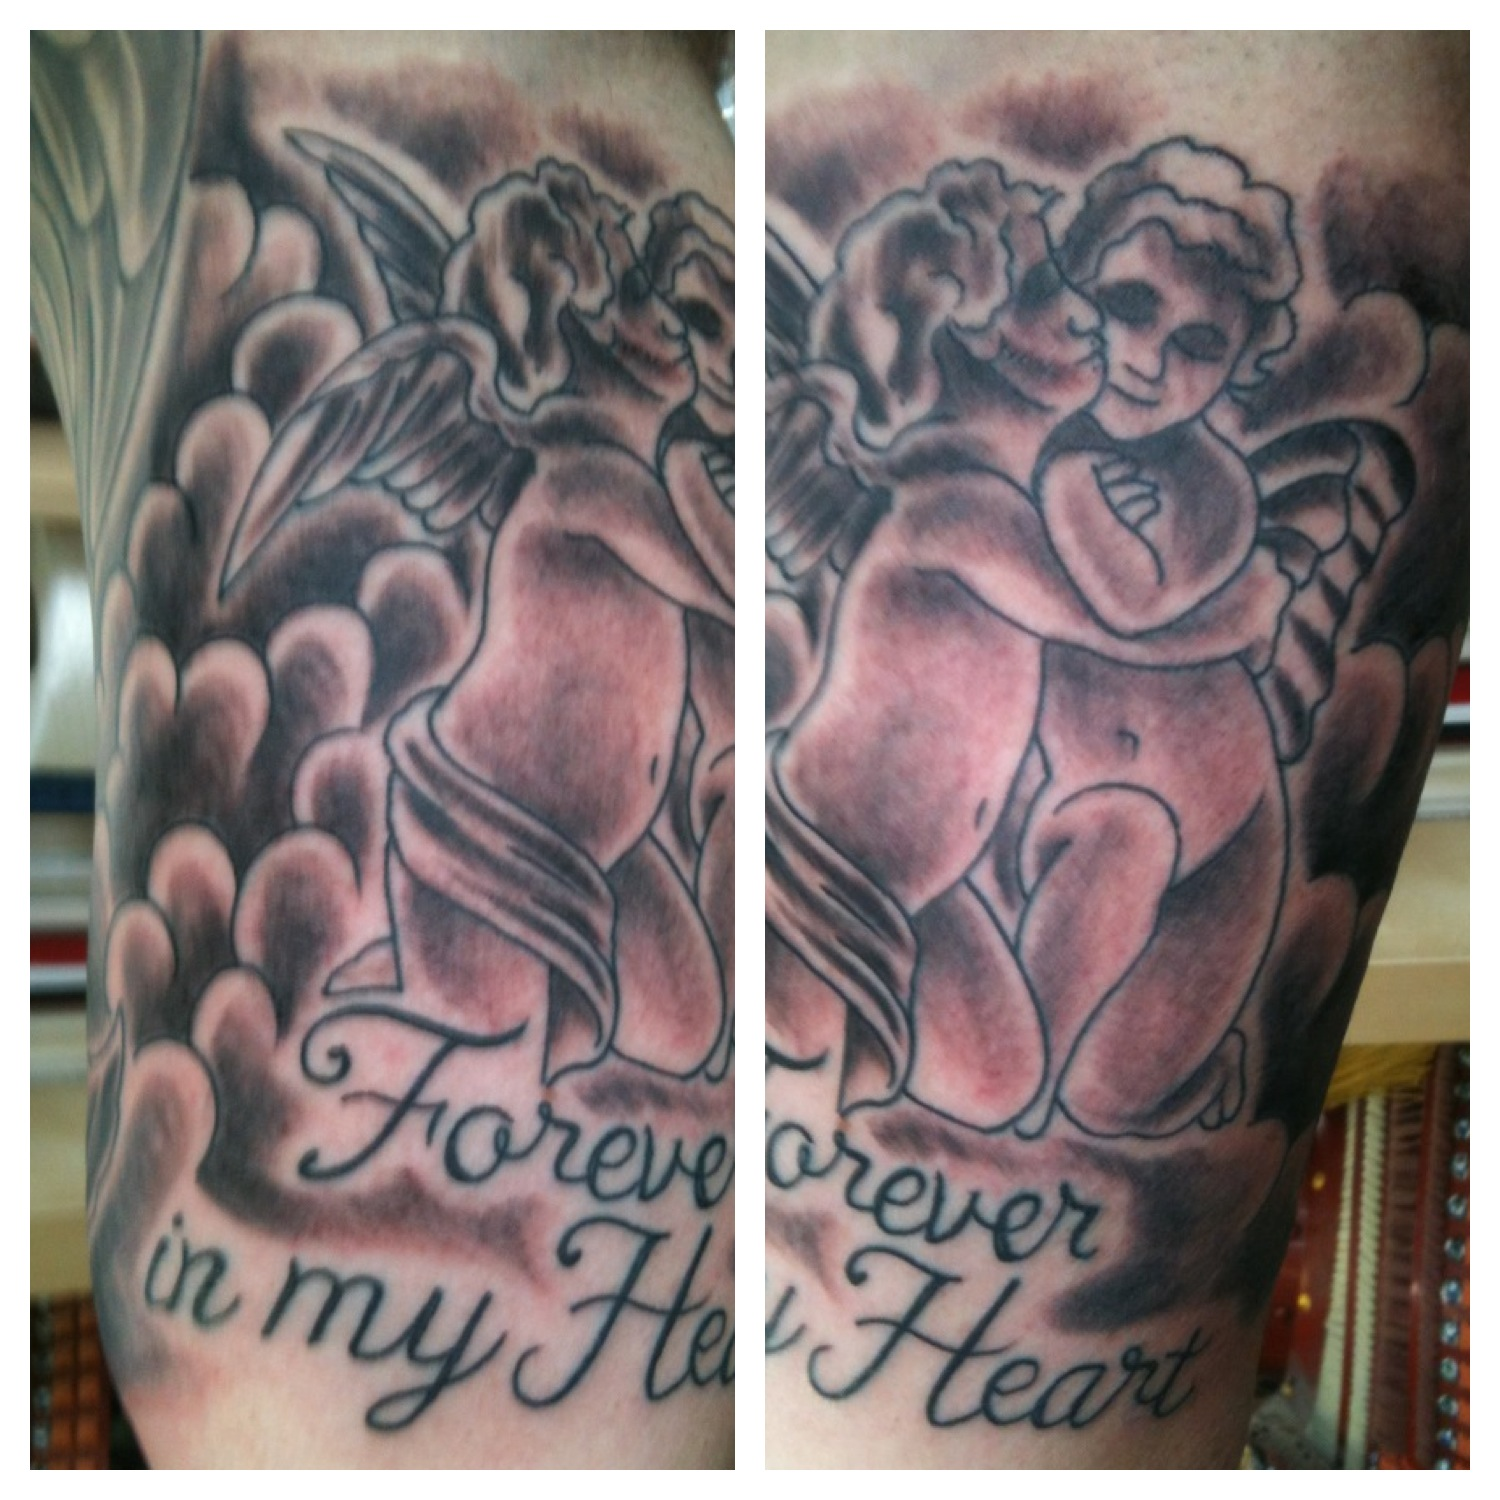 Irish Street Tattoo Forever In My Heart Tattoo Irish St Tattoo